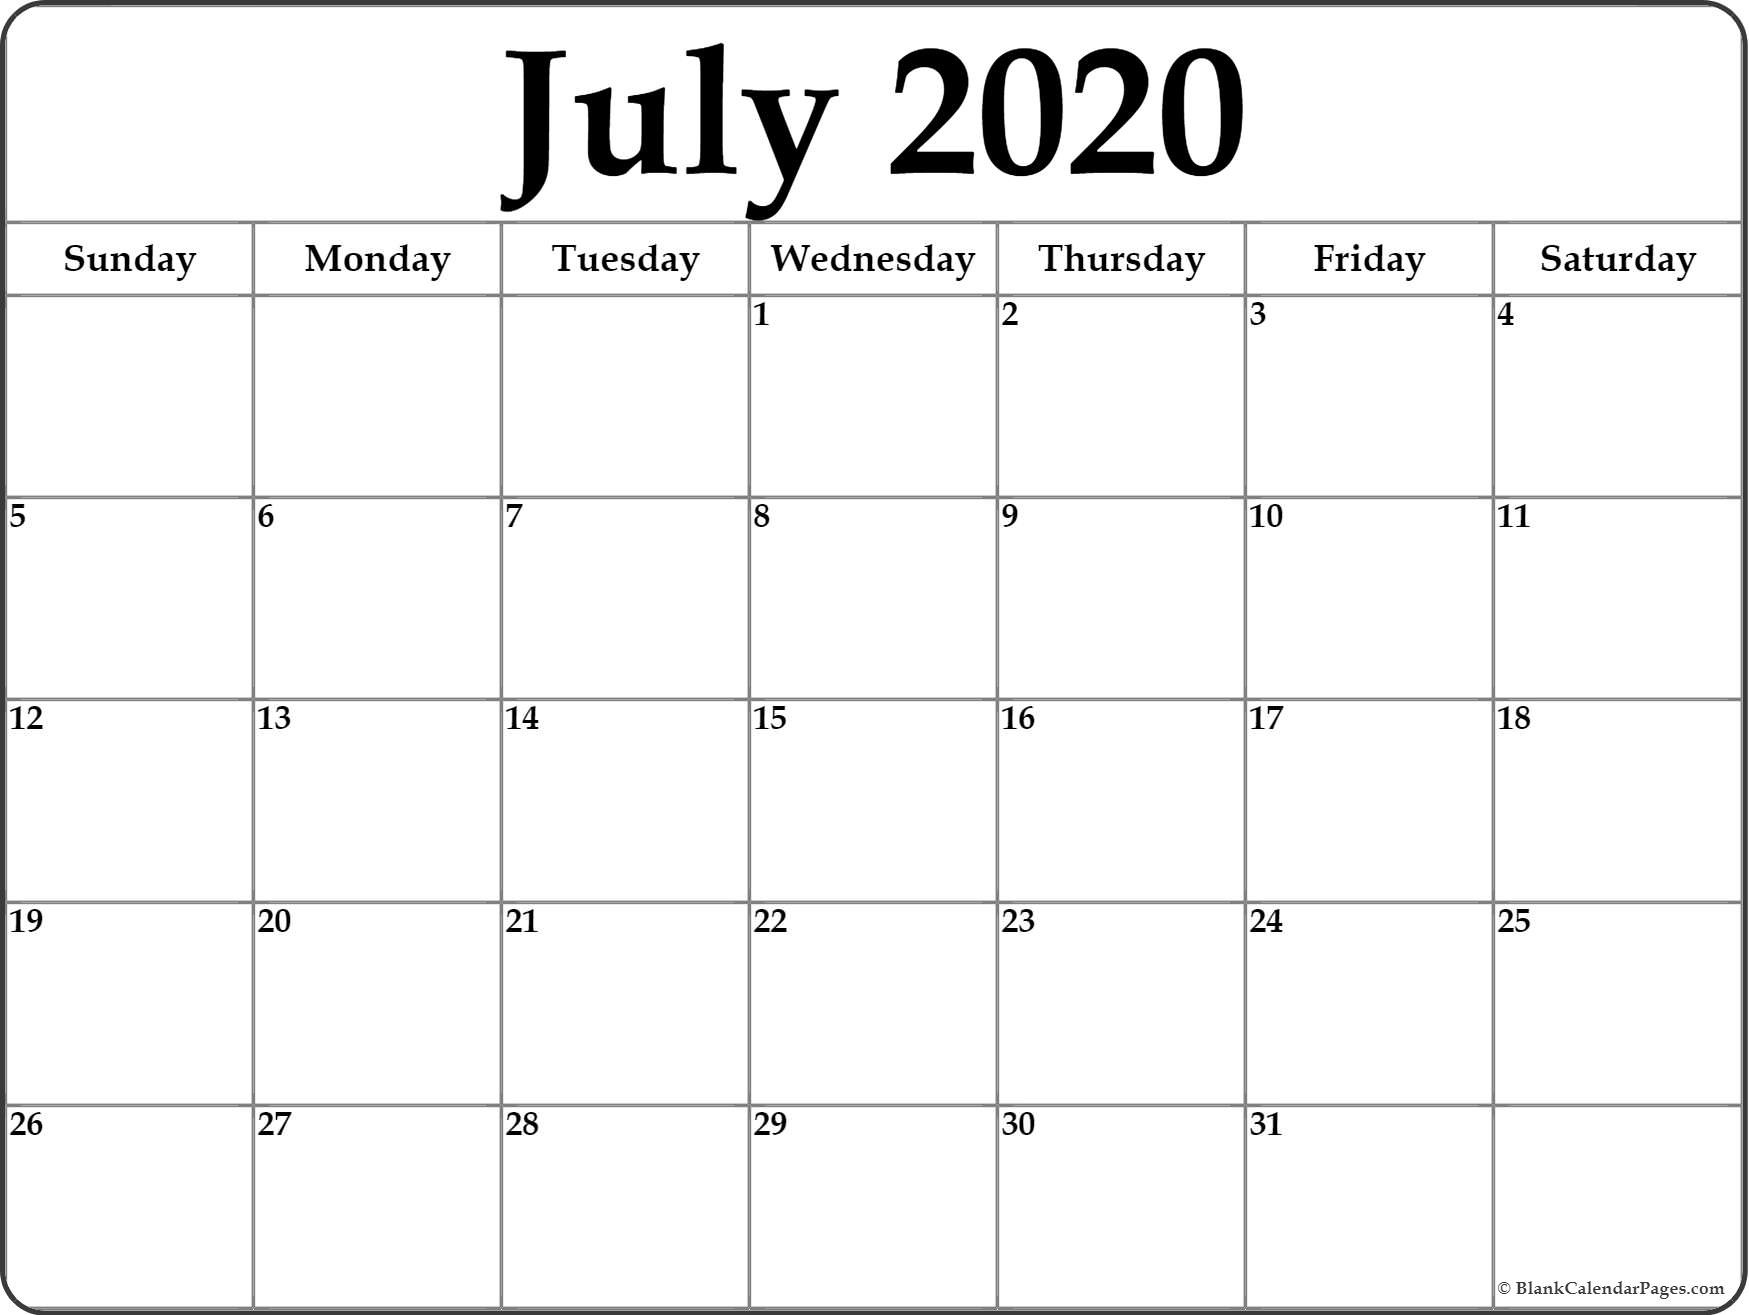 July 2020 Calendar | Free Printable Monthly Calendars-Printable Calendar 2020 Monthly June July